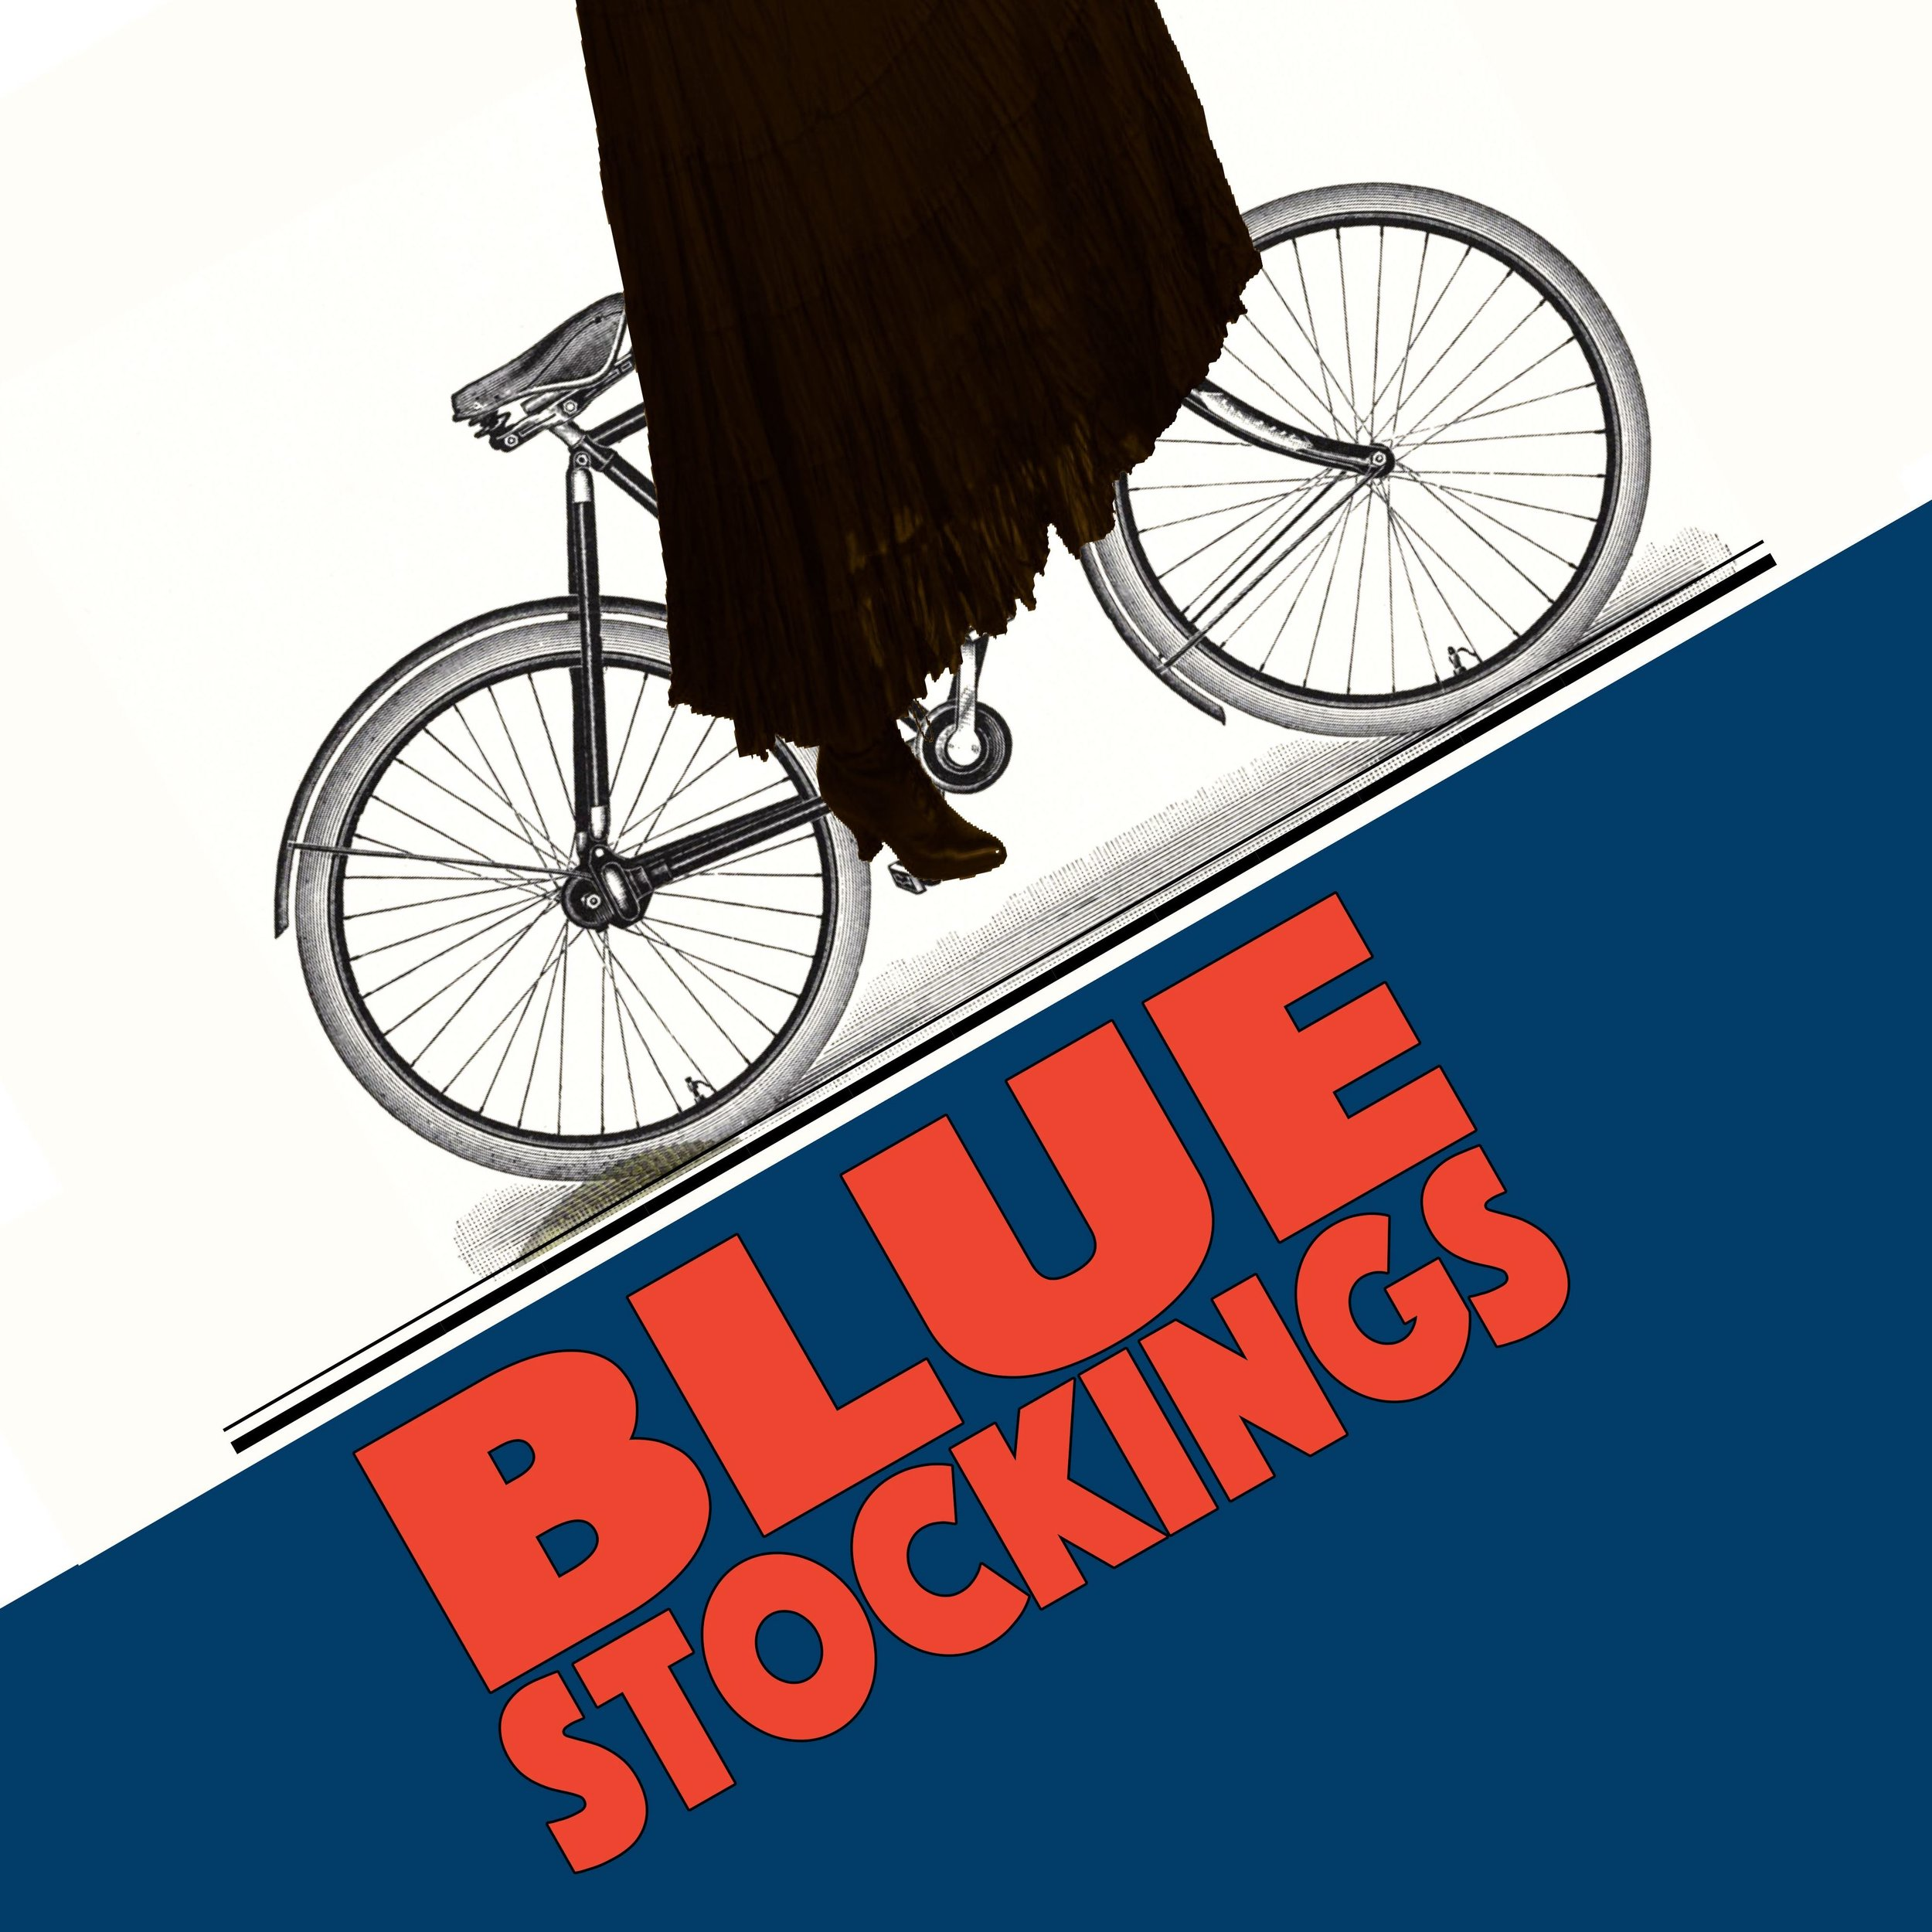 Blue Stockings - by Jessica SwaleDirected by Hallie FlowerThis witty and thought-provoking play examines the rights of every woman -- to an education, to her own autonomy, and to ride a bicycle.PERFORMANCES: Friday, April 5th 7pm + Saturday, April 6th 2pm & 7pm + Friday, April 12th 7pm + Saturday, April 13th 2pm & 7pmTICKETS: Adults $15, Seniors $13, Students $11Sponsored by Grace Cottage Family Health and Hospital